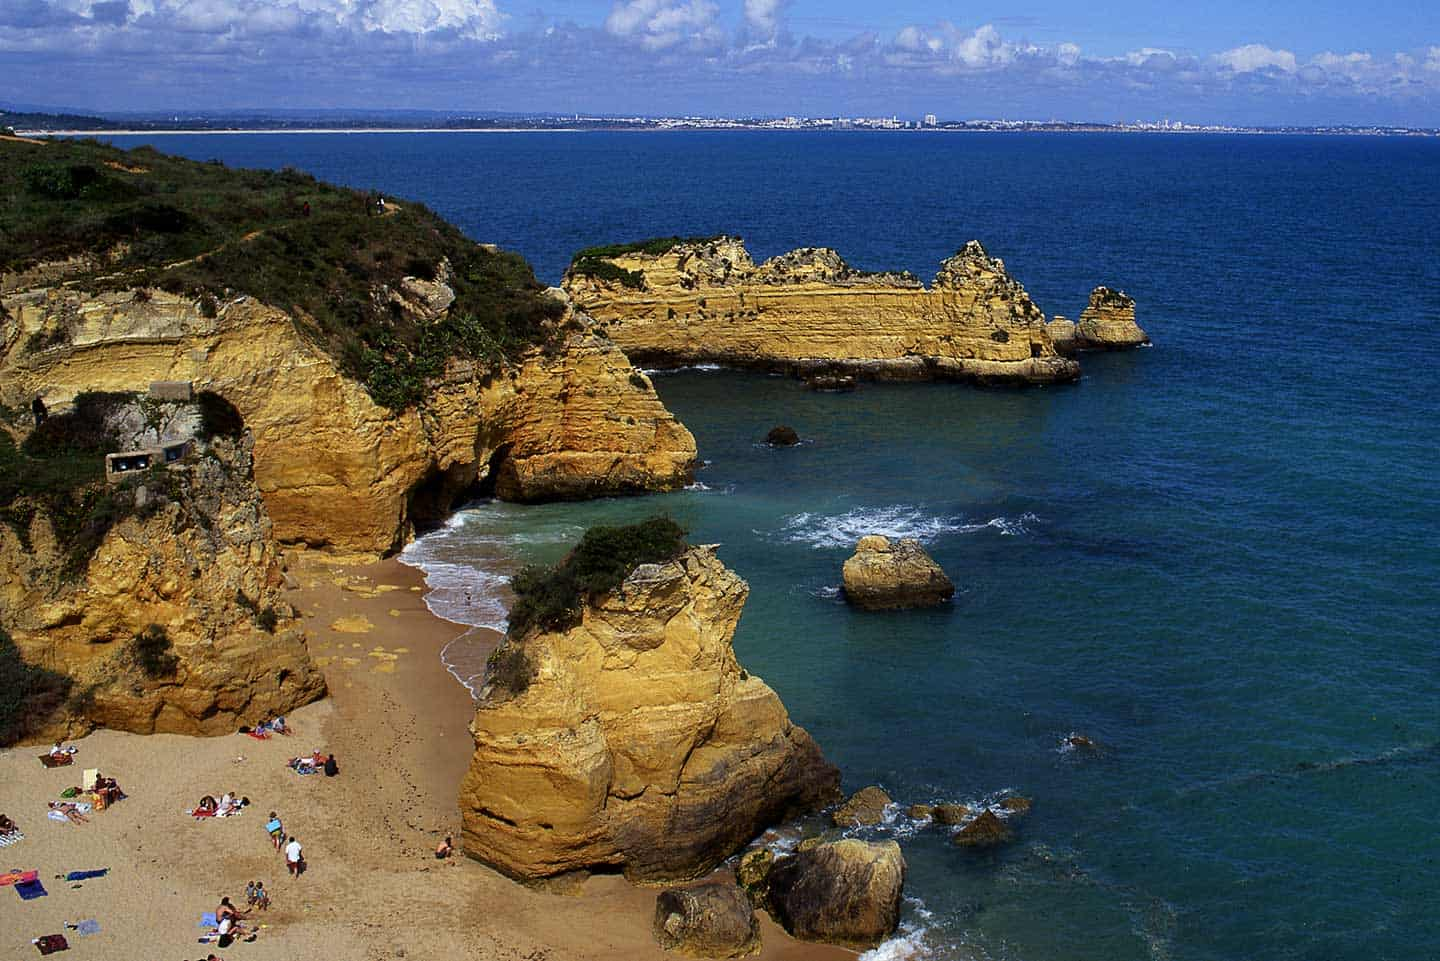 Image of Praia Dona Ana, one of the best beaches in Algarve